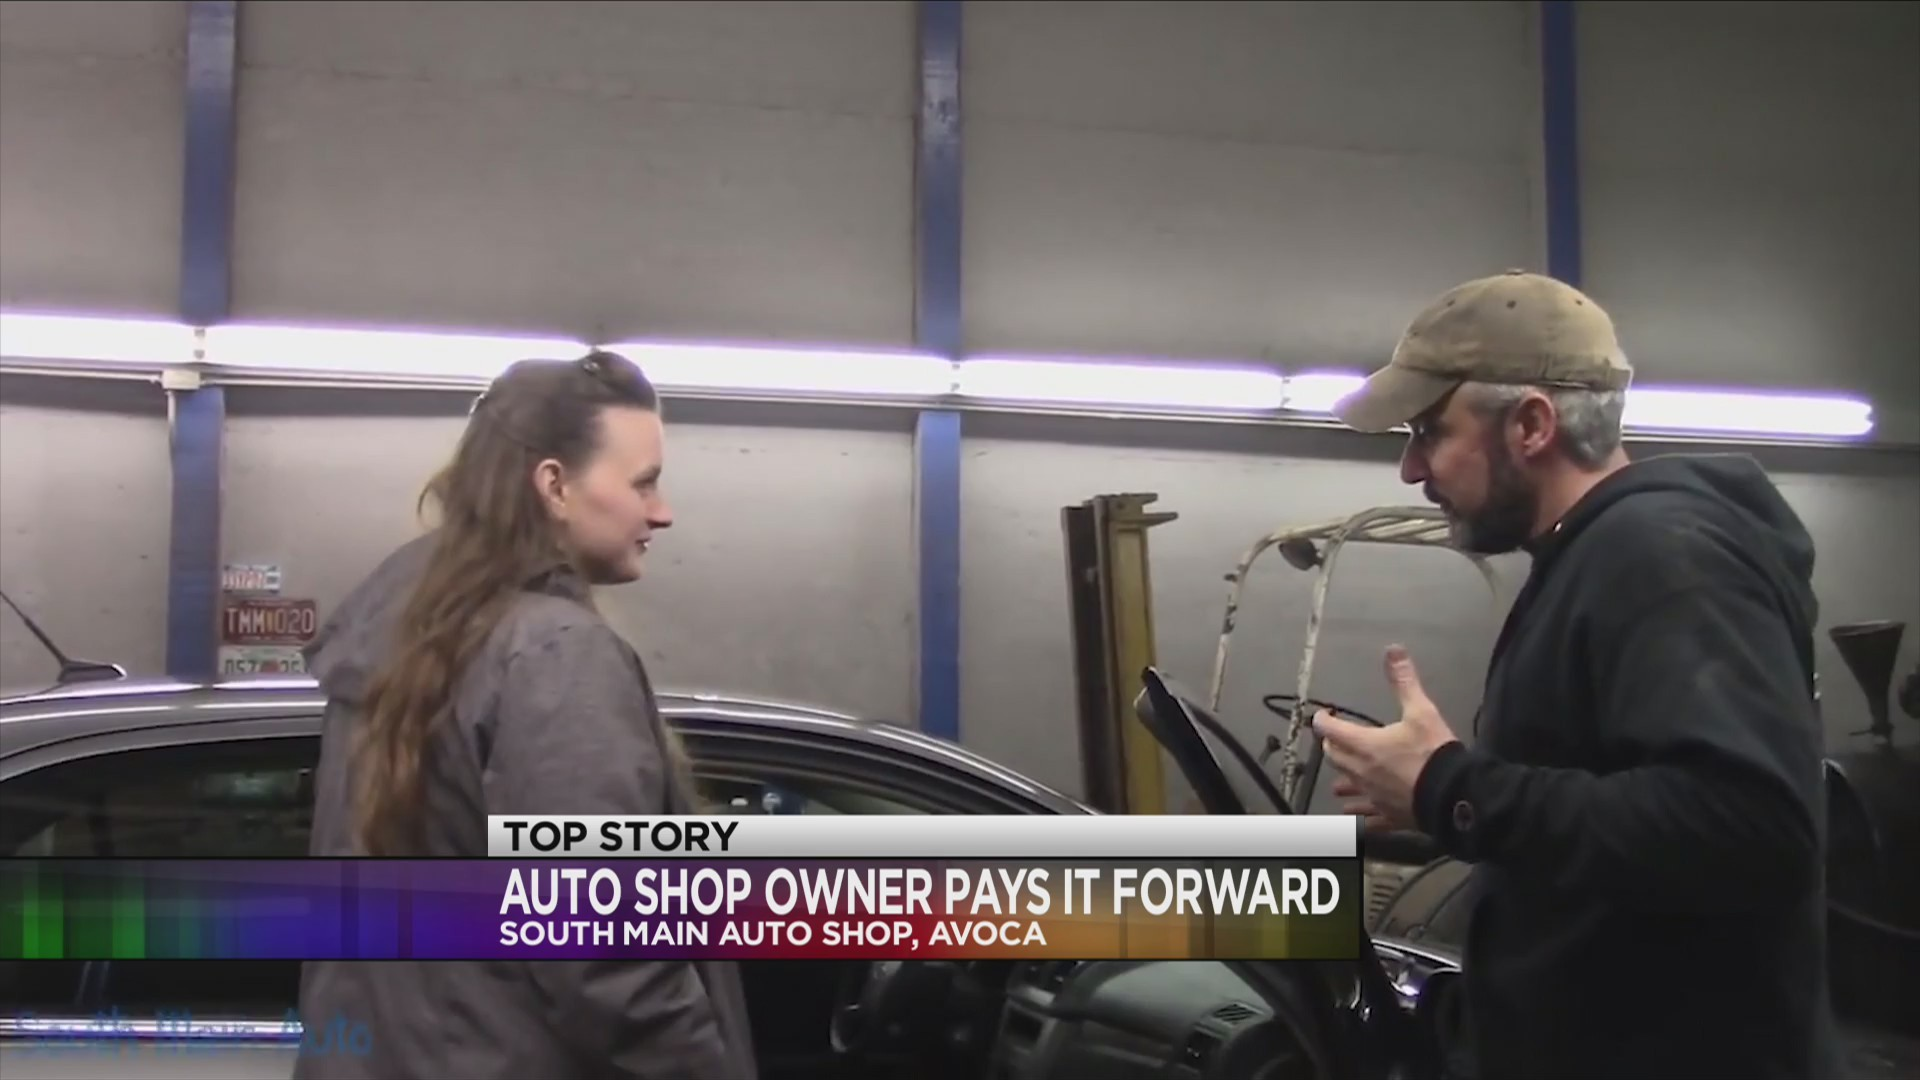 local auto shop owner pays it forward local auto shop owner pays it forward